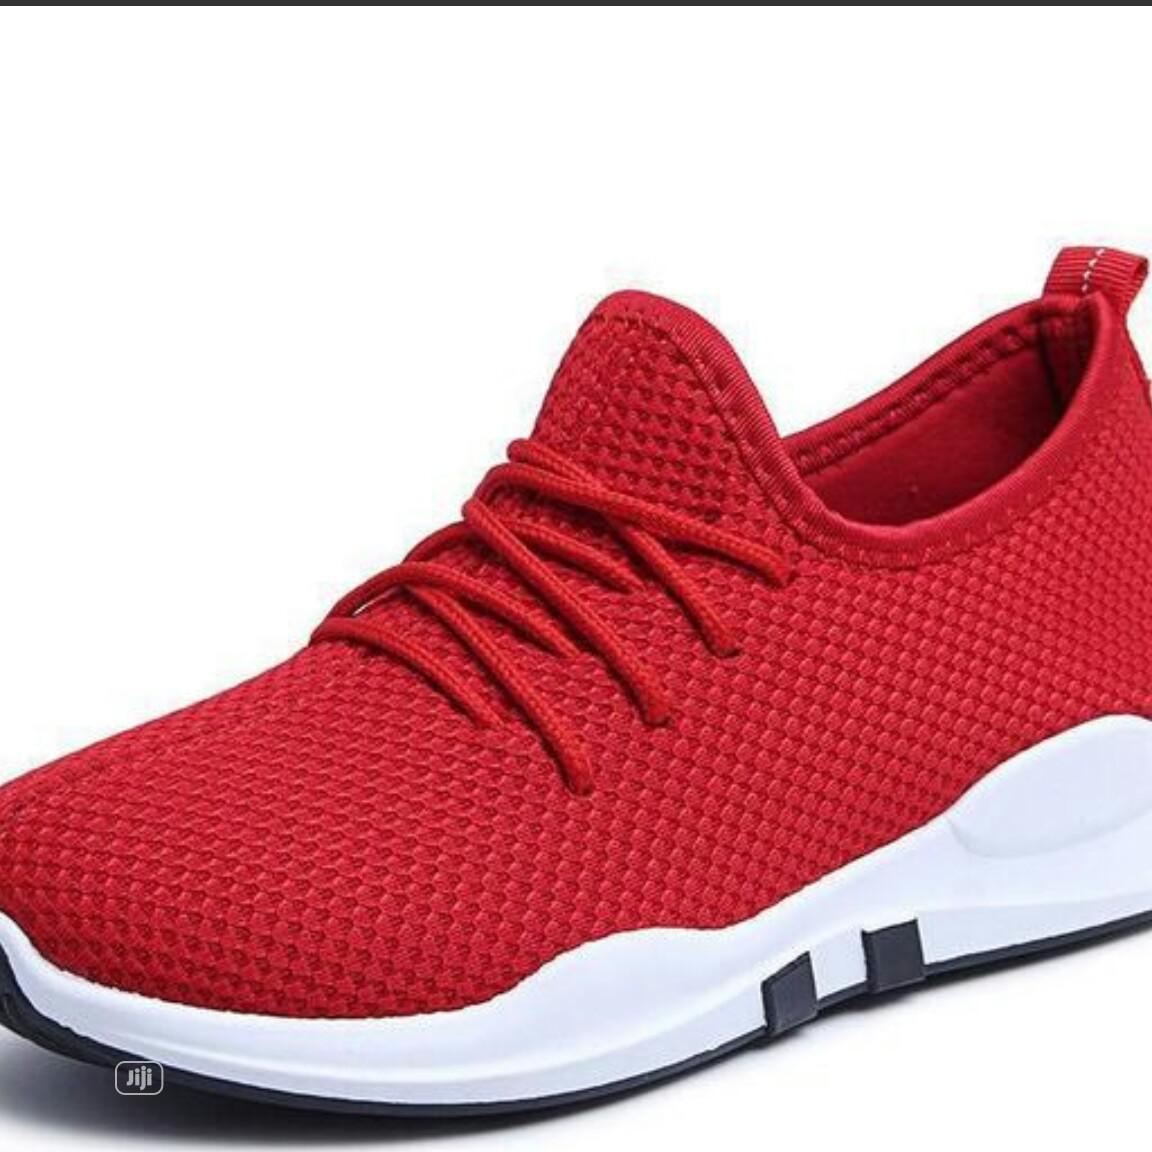 Promo Price Red Sneakers Breathable Comfy | Shoes for sale in Agege, Lagos State, Nigeria